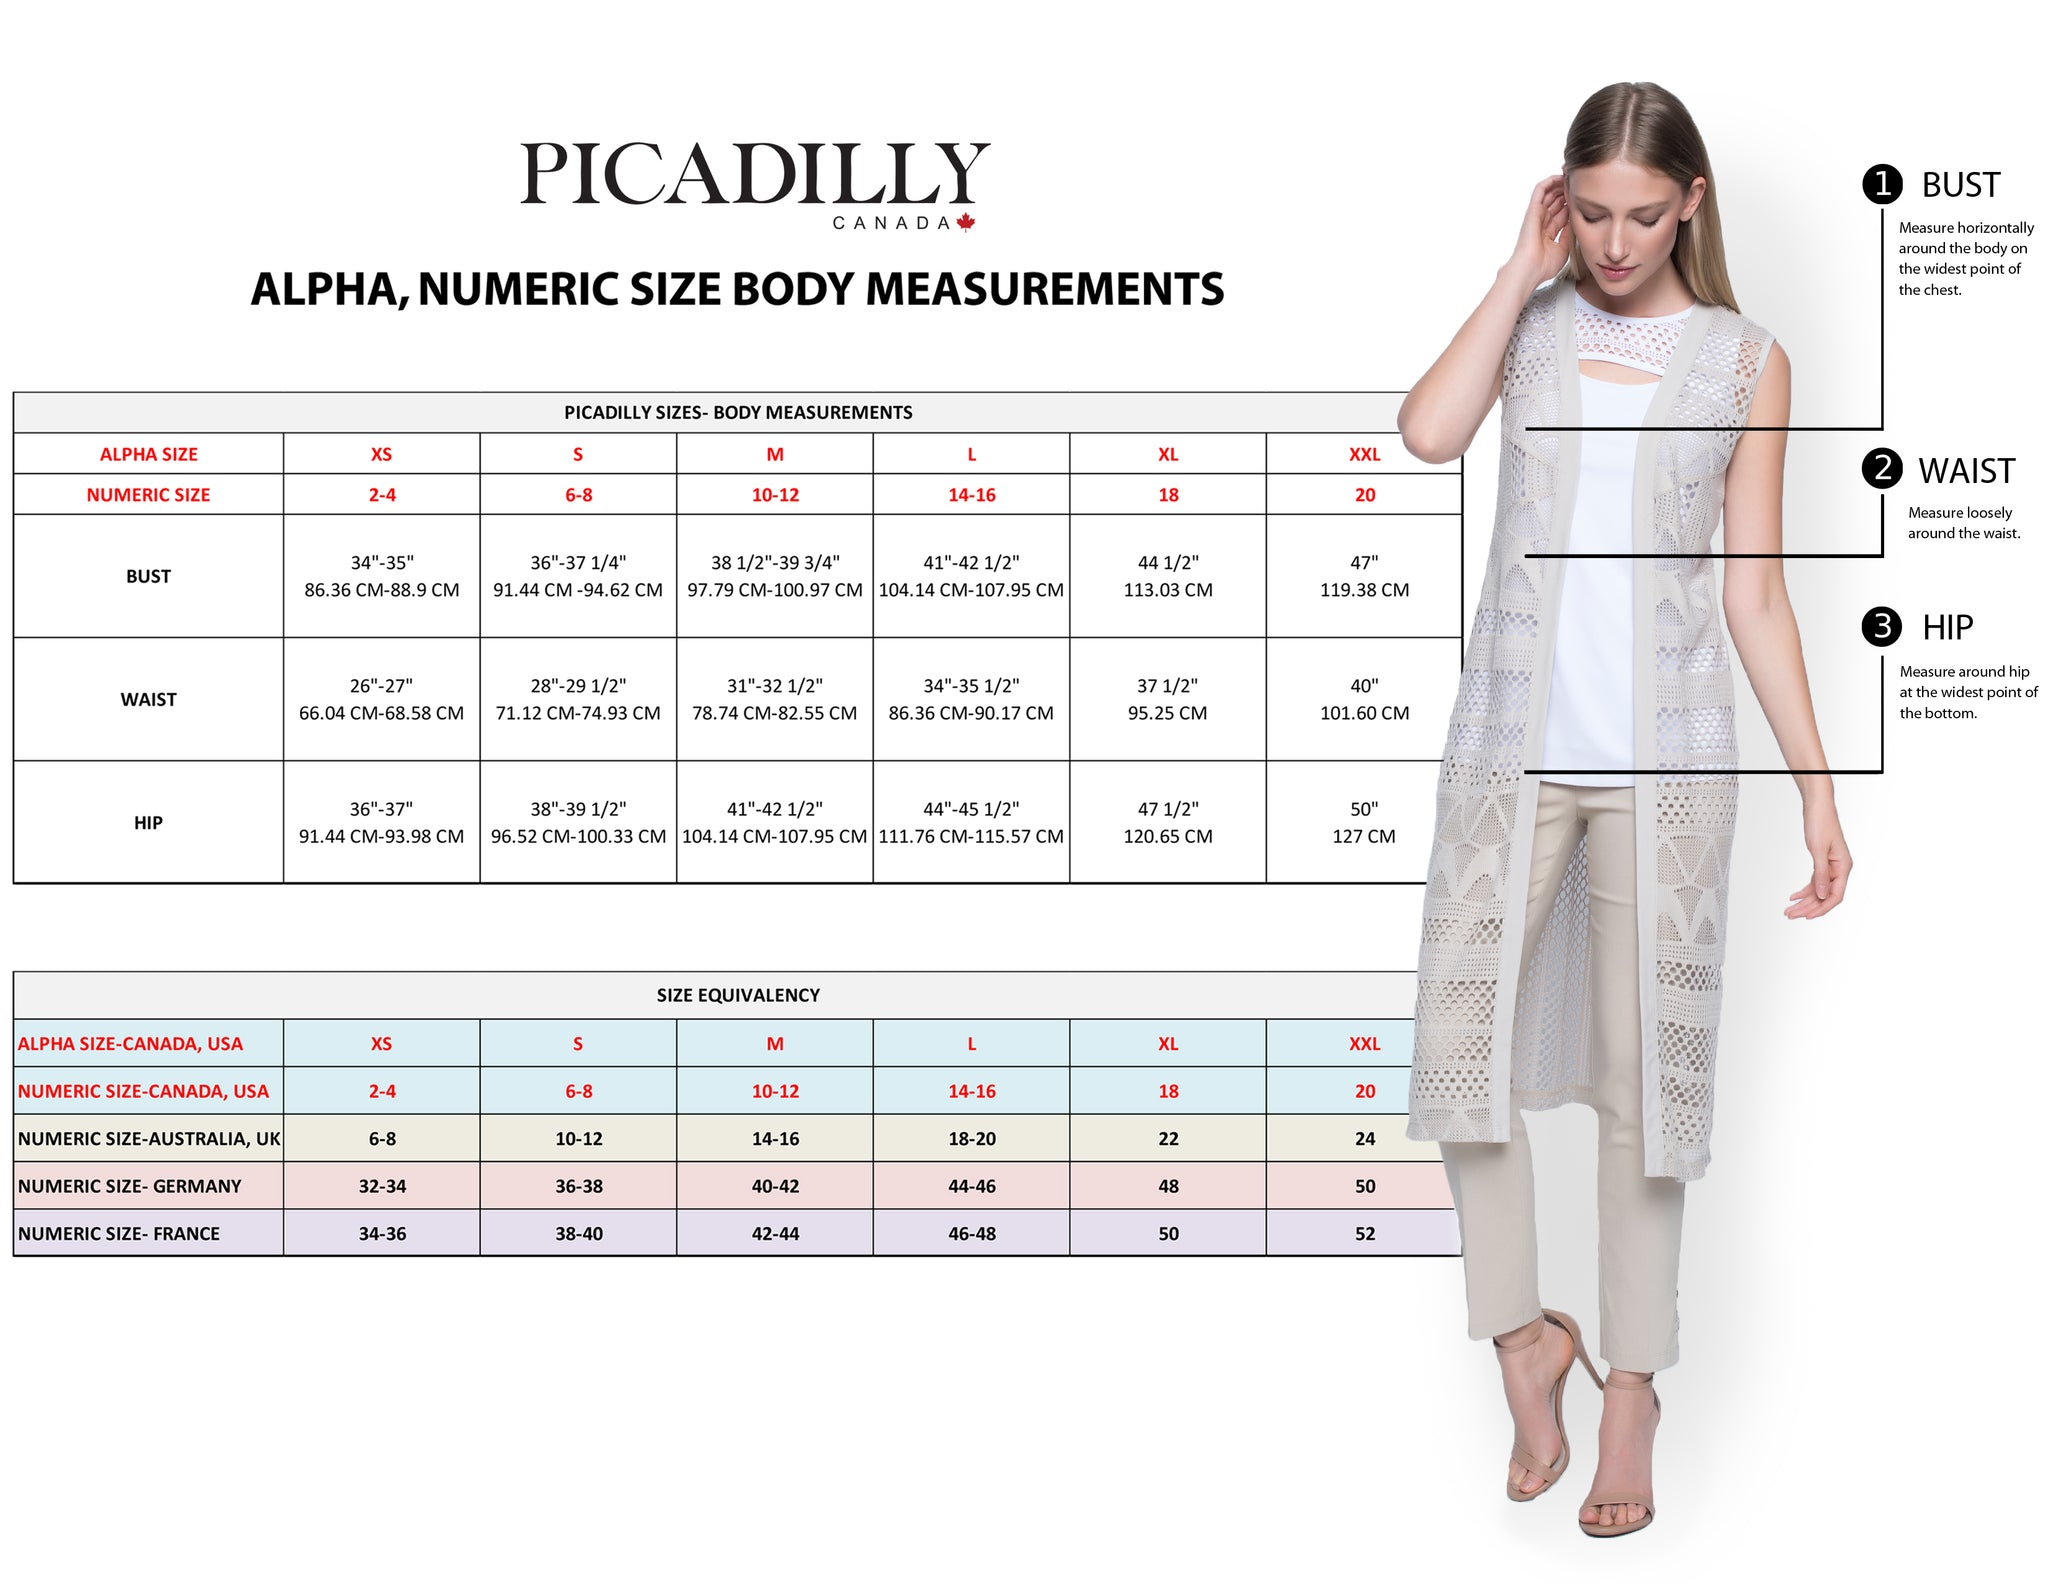 Picadilly Body Measurement - International sizing chart